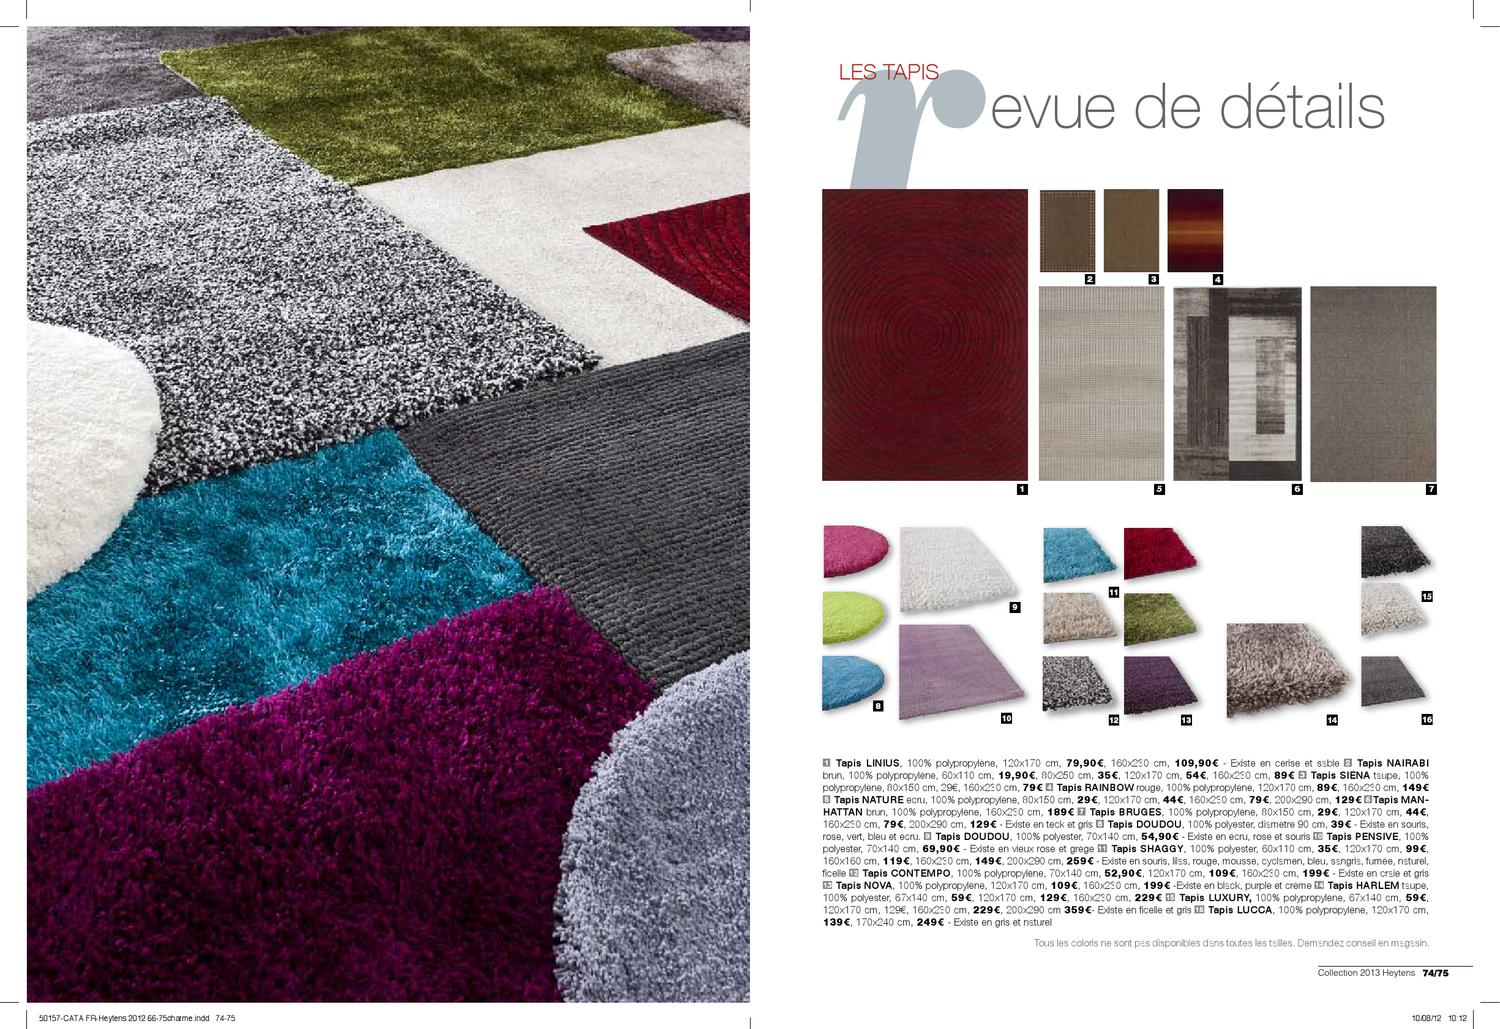 Heytens Tapis Collection Heytens 2013 France By Mehdi Tekaya Issuu